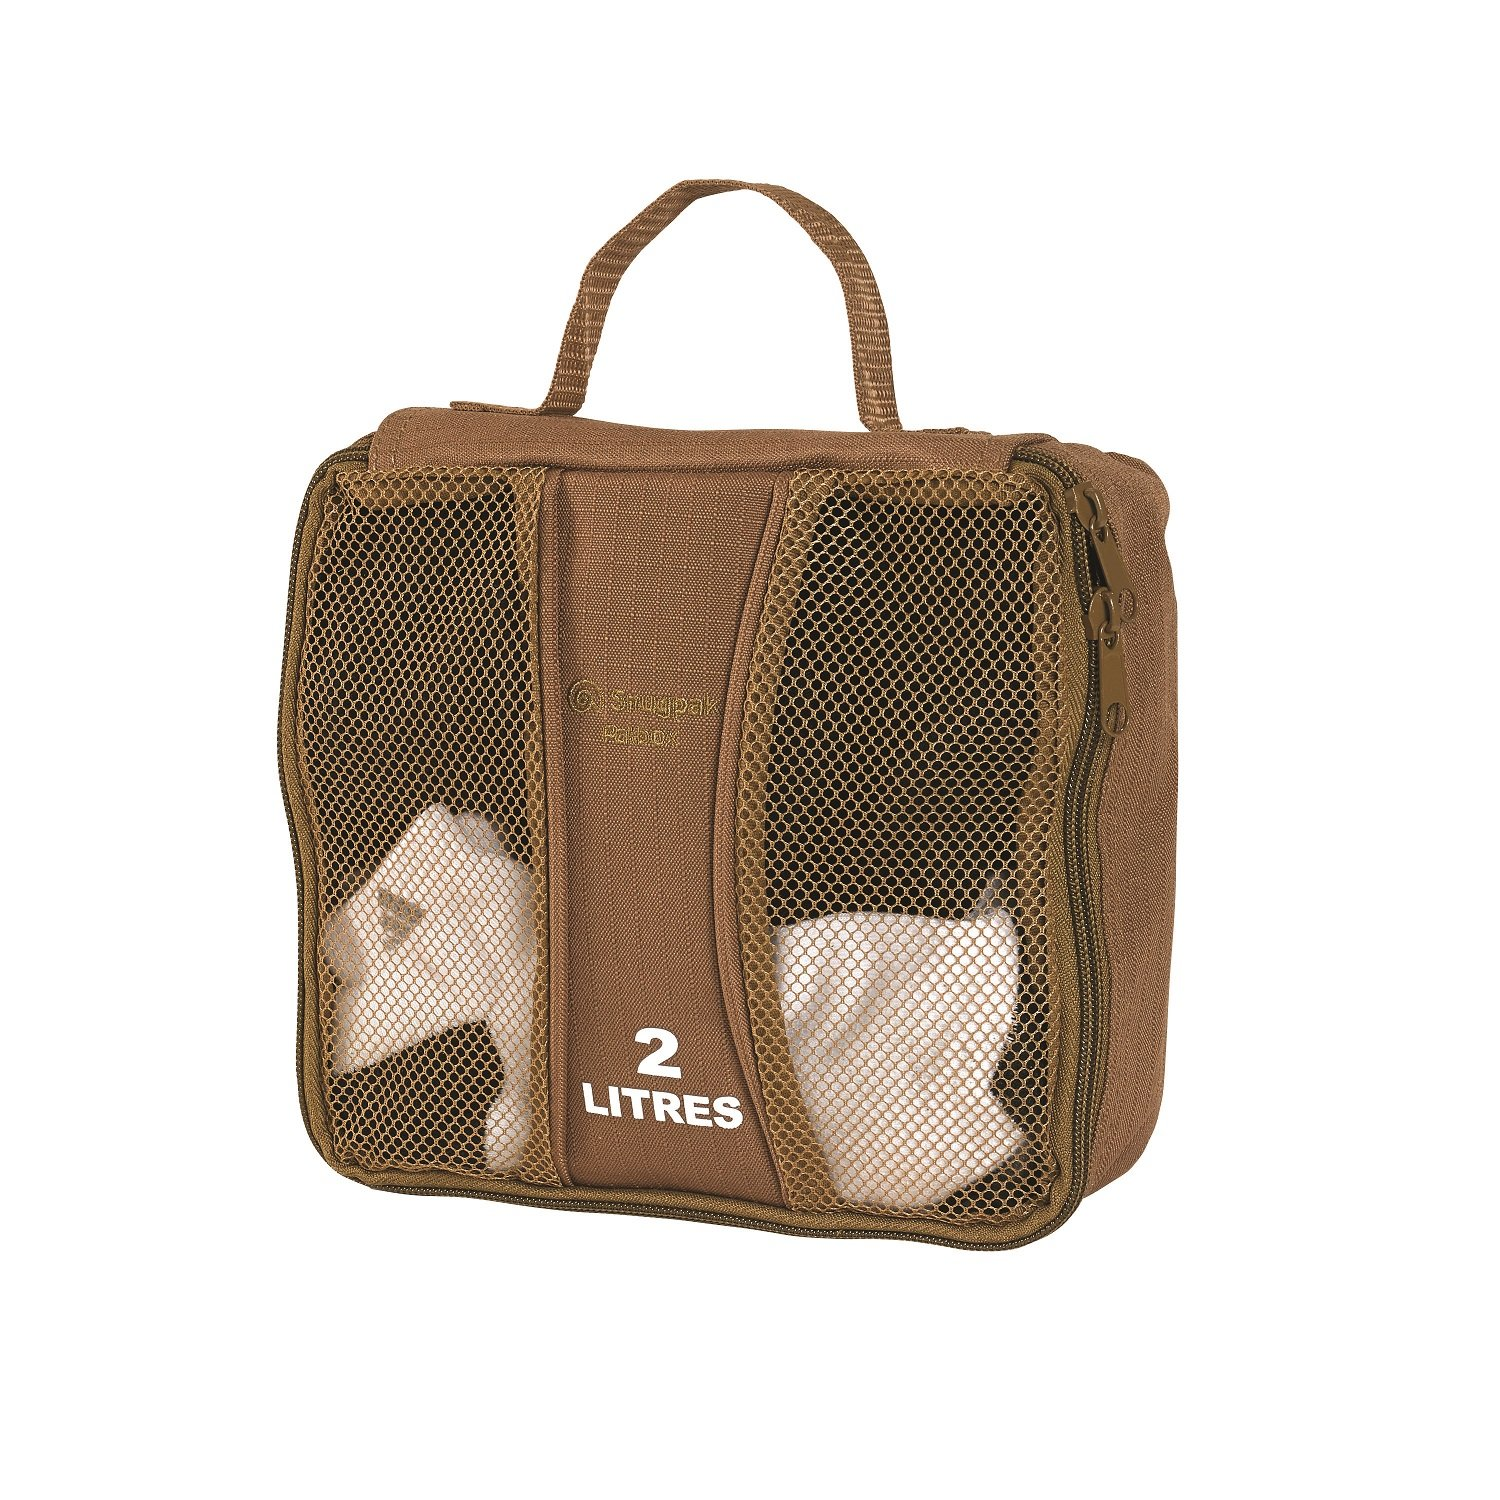 沸騰ブラドン Snugpak L, Pakbox, 2 2 L, Coyote Tan by SnugPak by B00CJFU13K, TOKI ポケットチーフ:255fd55f --- movellplanejado.com.br